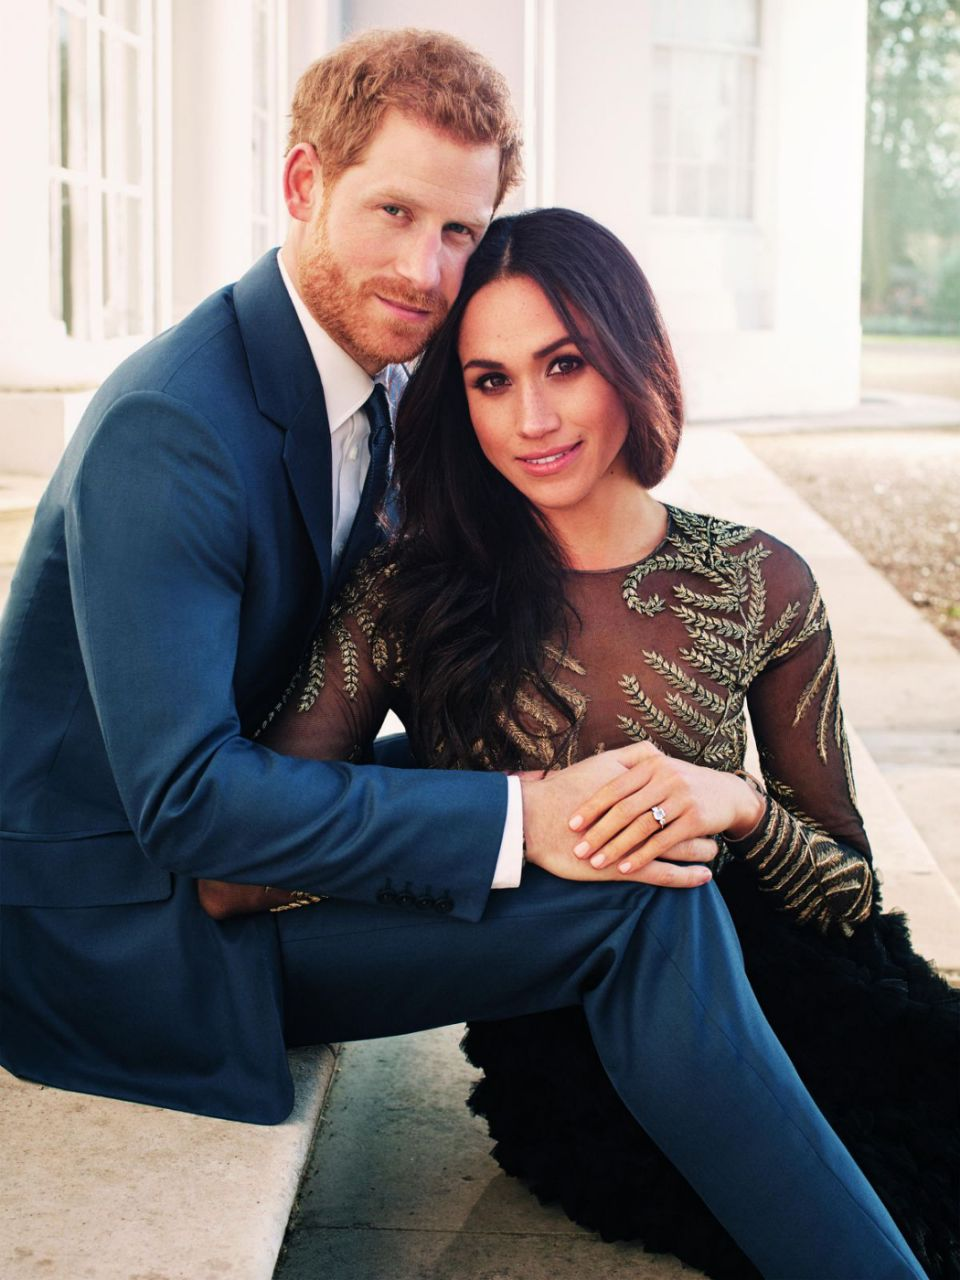 Meghan Markle and Prince Harry are getting married on May 19th. Photo Getty Images